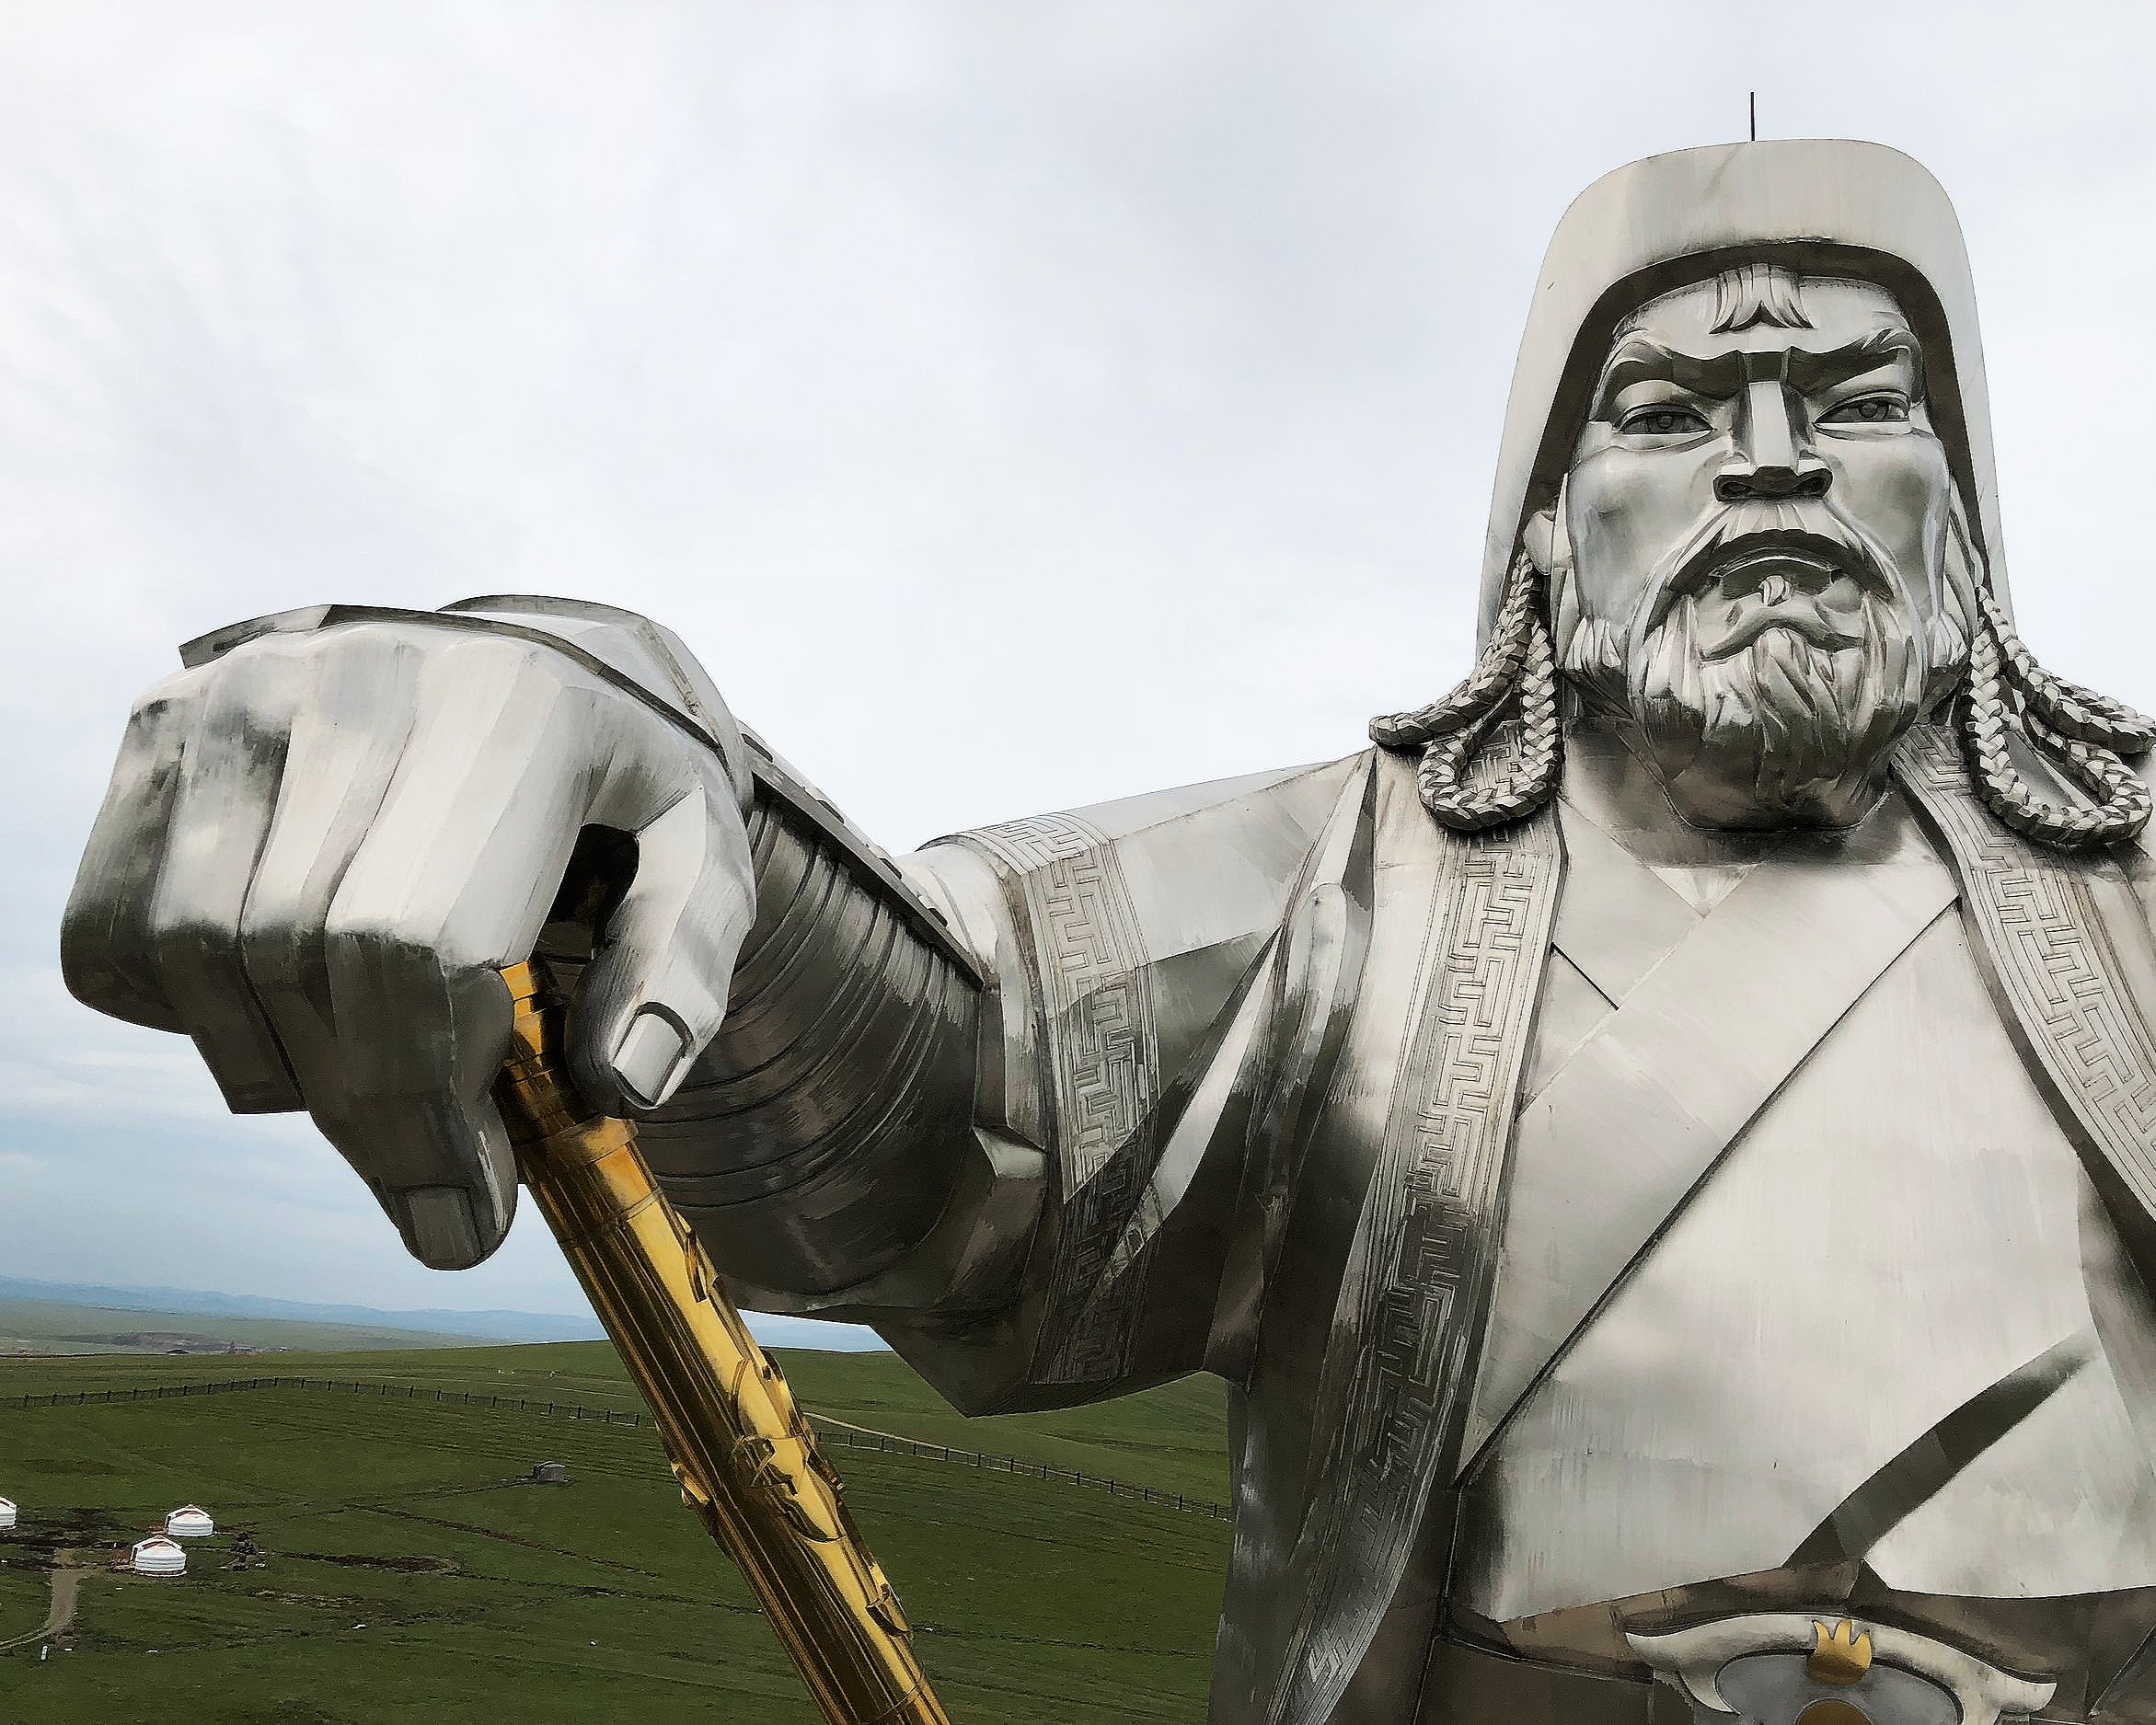 Ghengis khan followed his plans ruthlessly - and he was a great storyteller